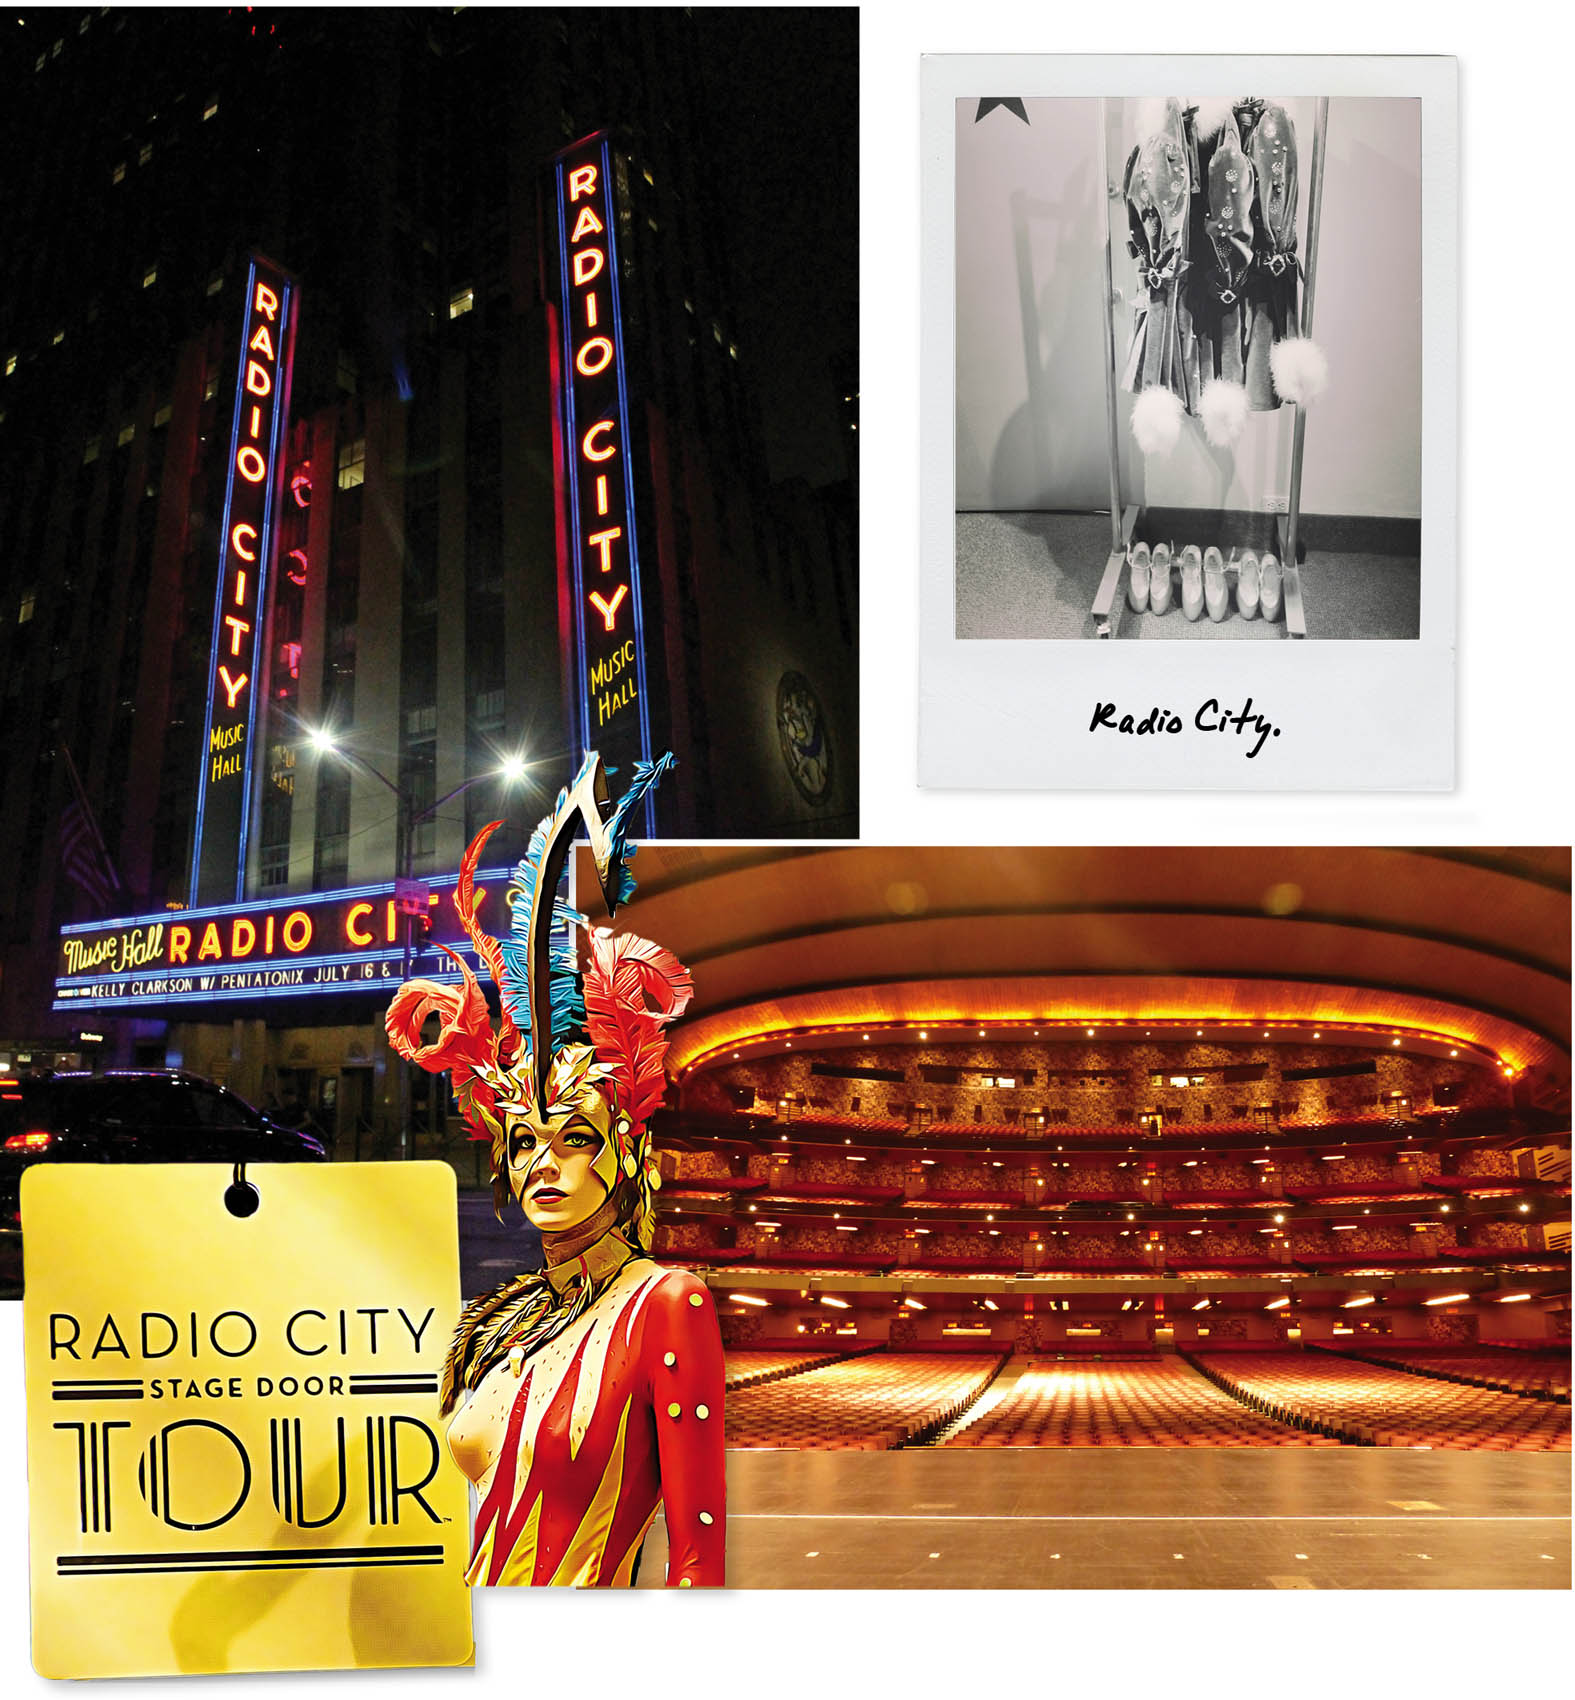 usa, New York, nyc, radio city, voyage, road trip